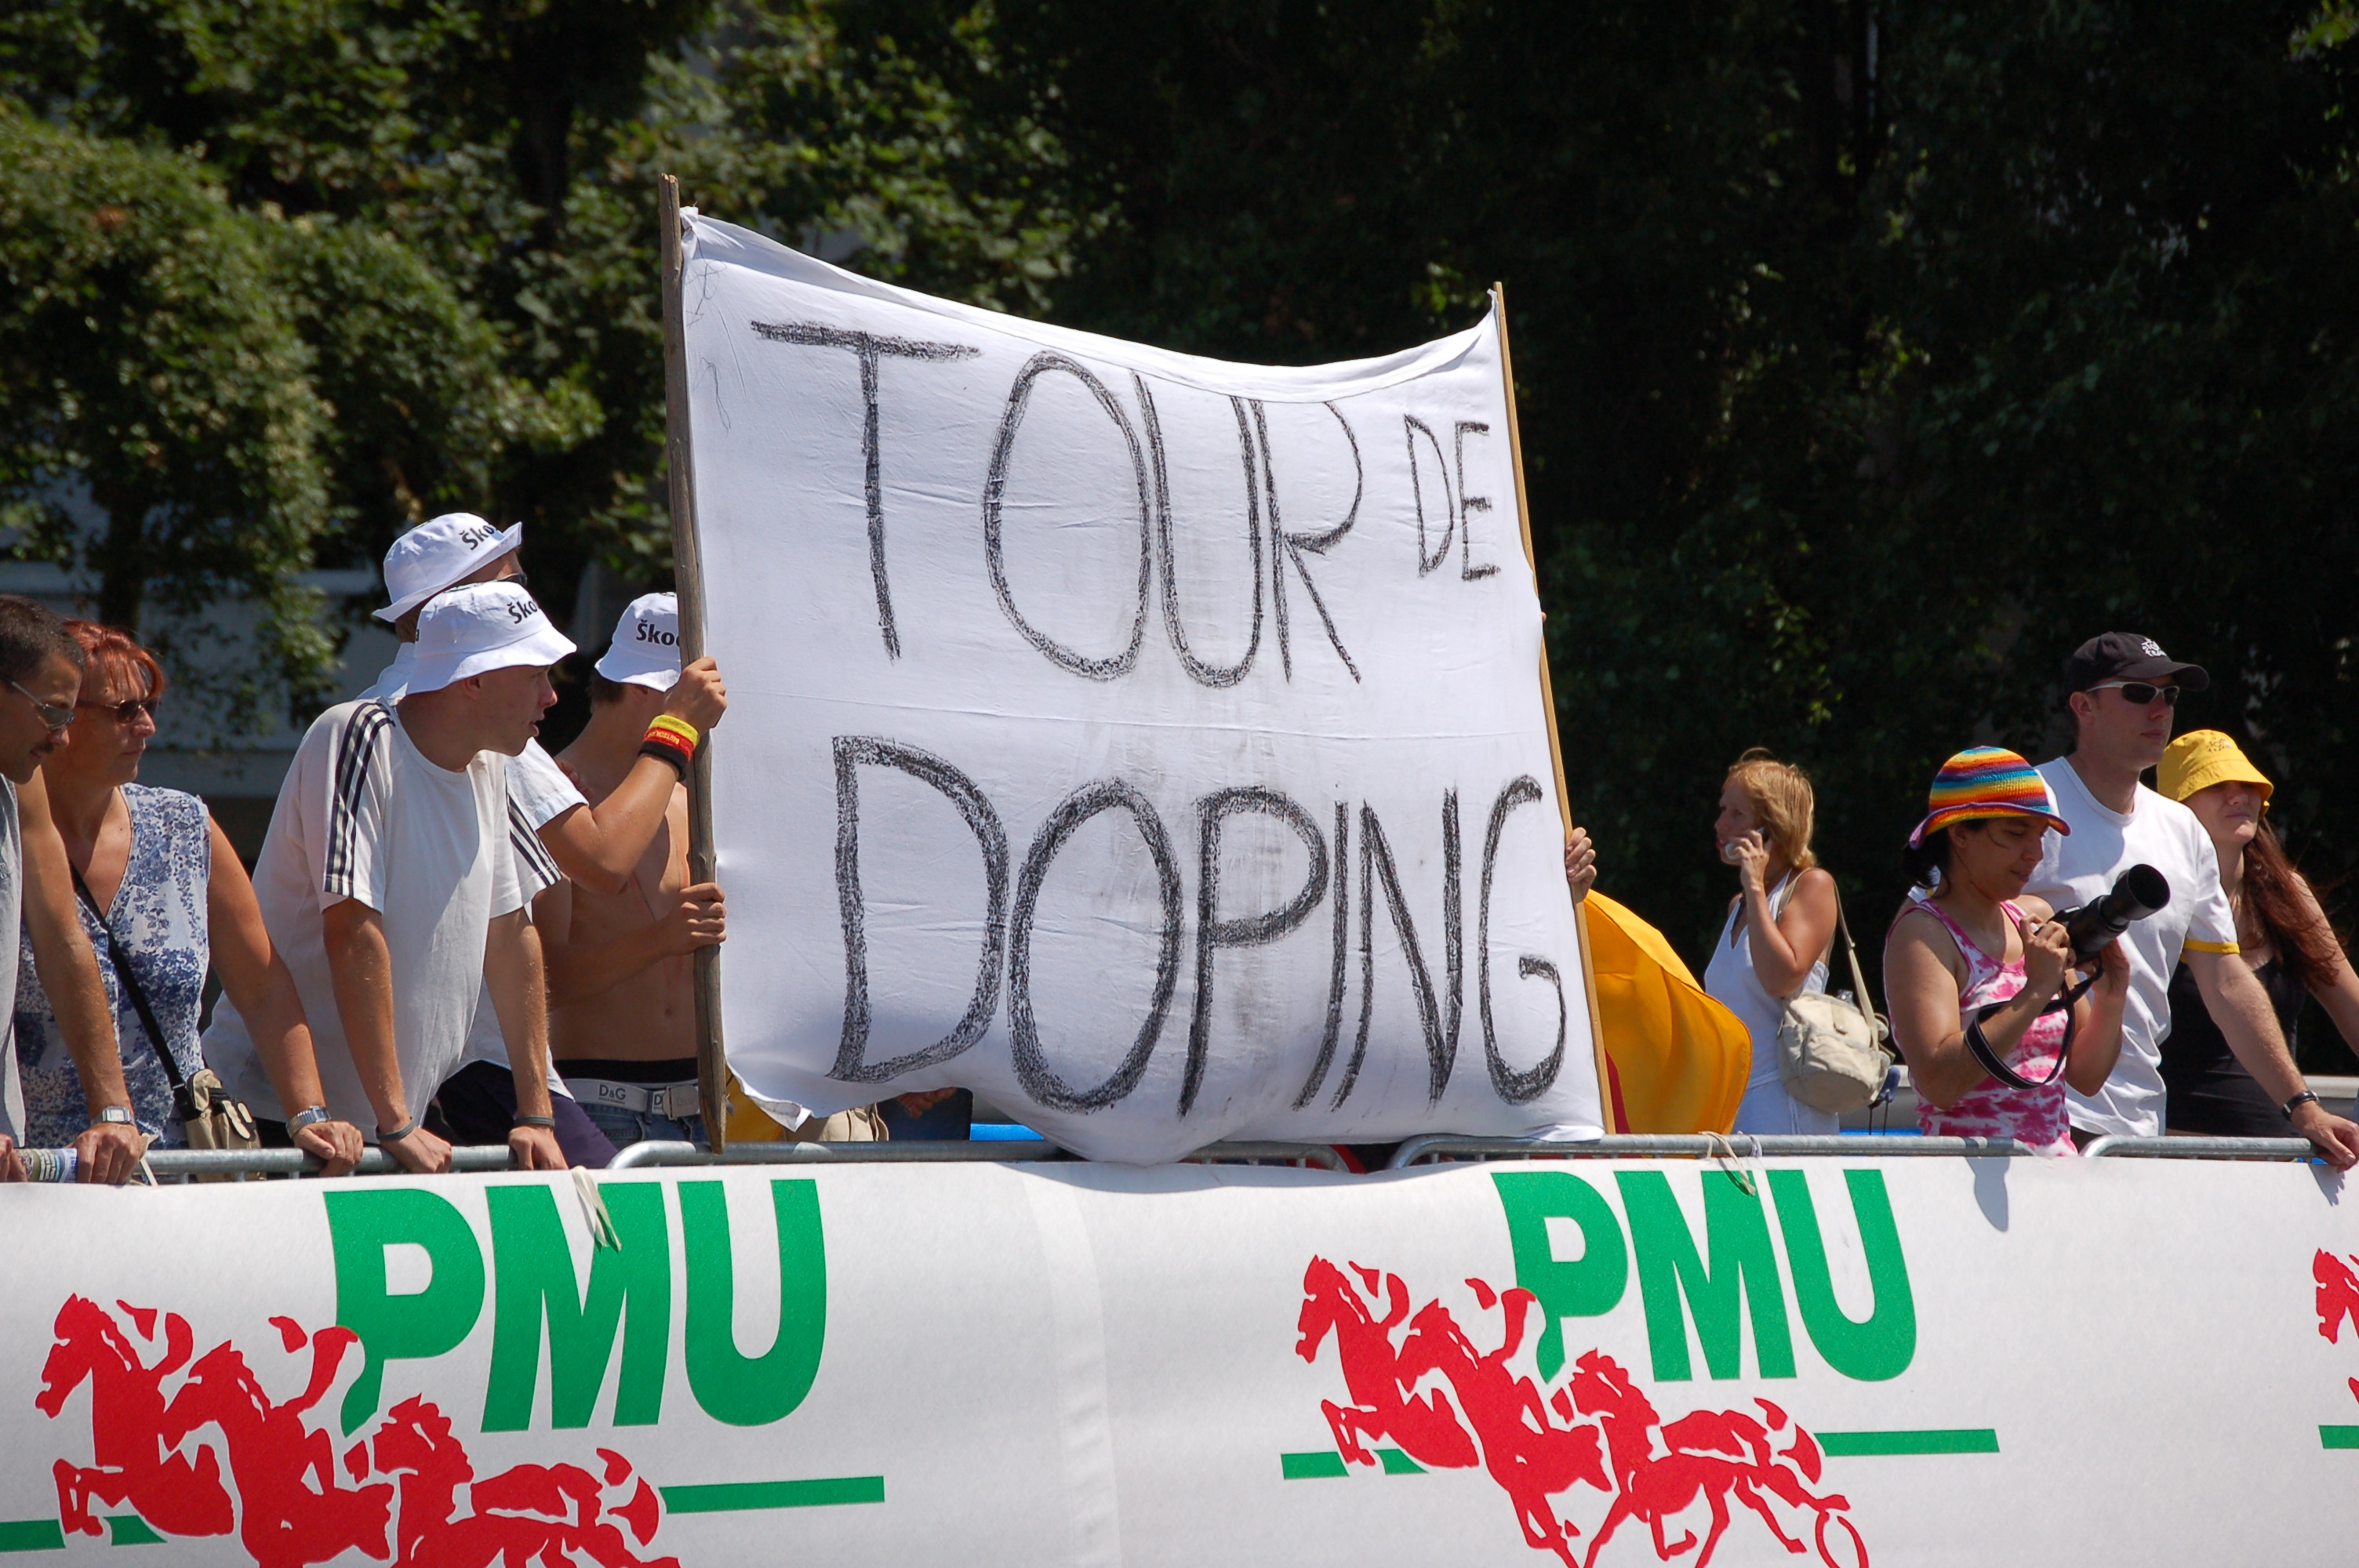 81f9e4c96 Doping at the Tour de France - Wikiwand